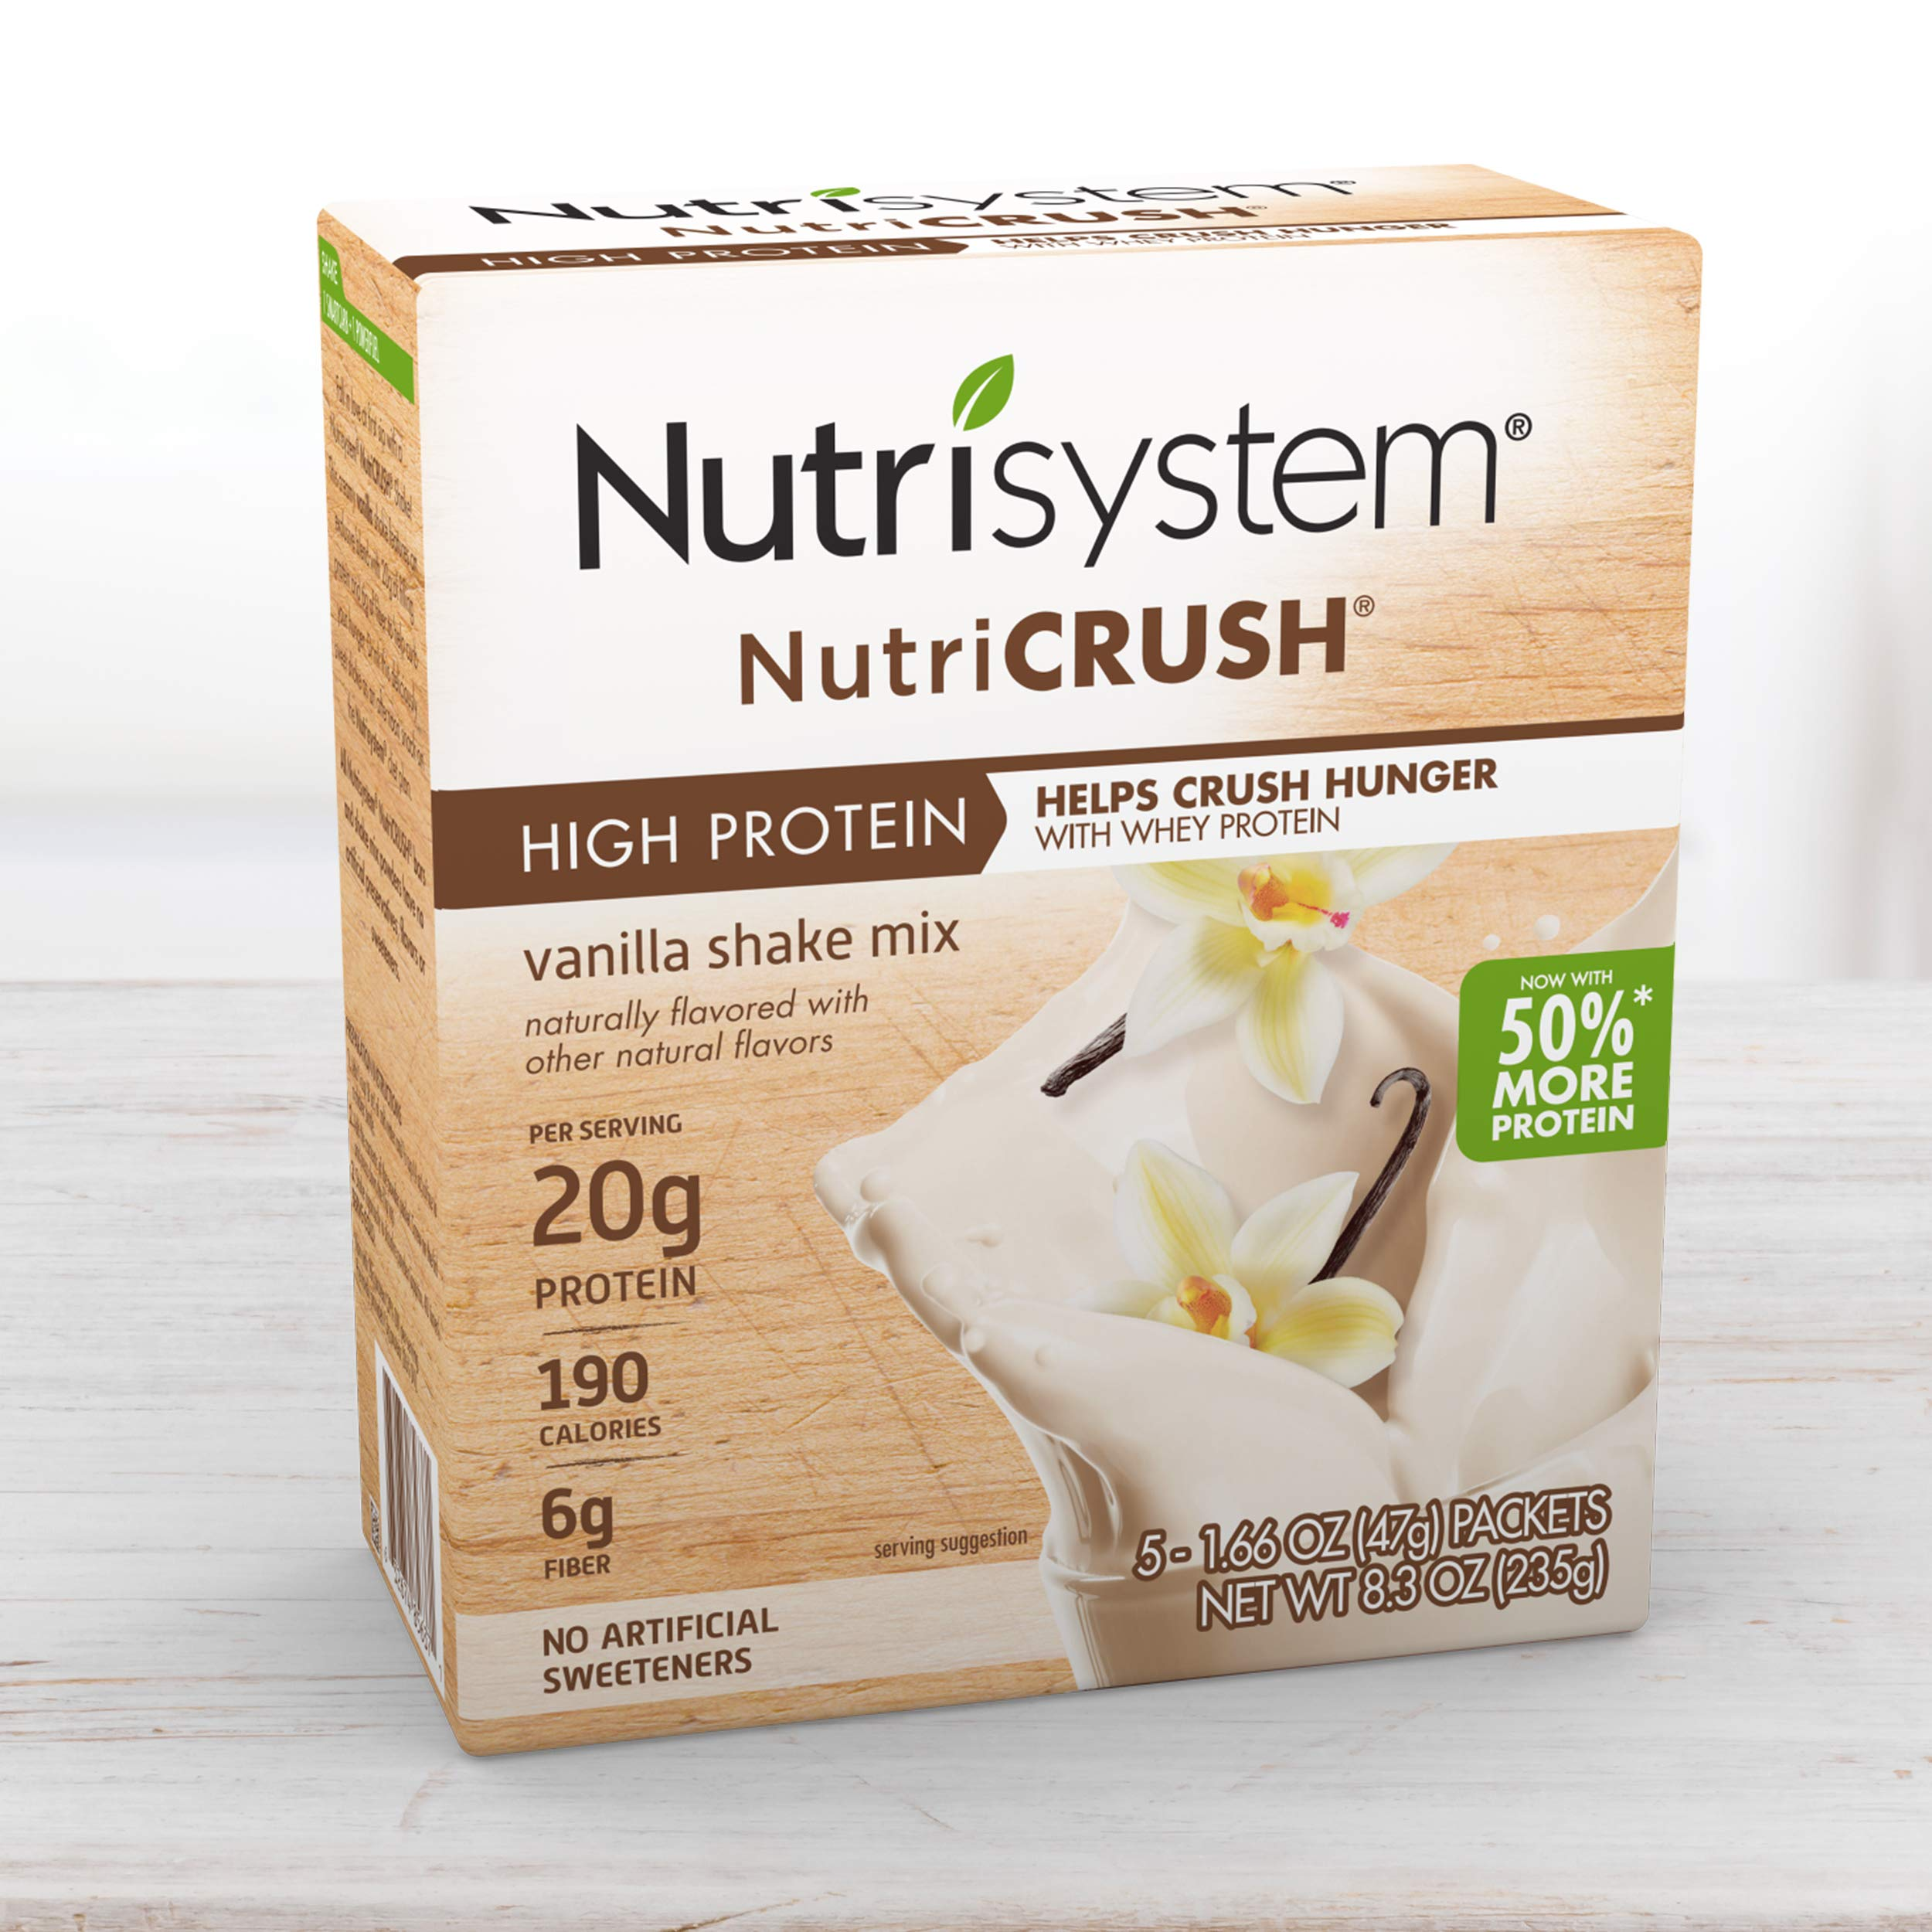 Nutrisystem® NutriCRUSH® Vanilla Shake Mix, 20 Count, Now with 50% More Protein by Nutrisystem